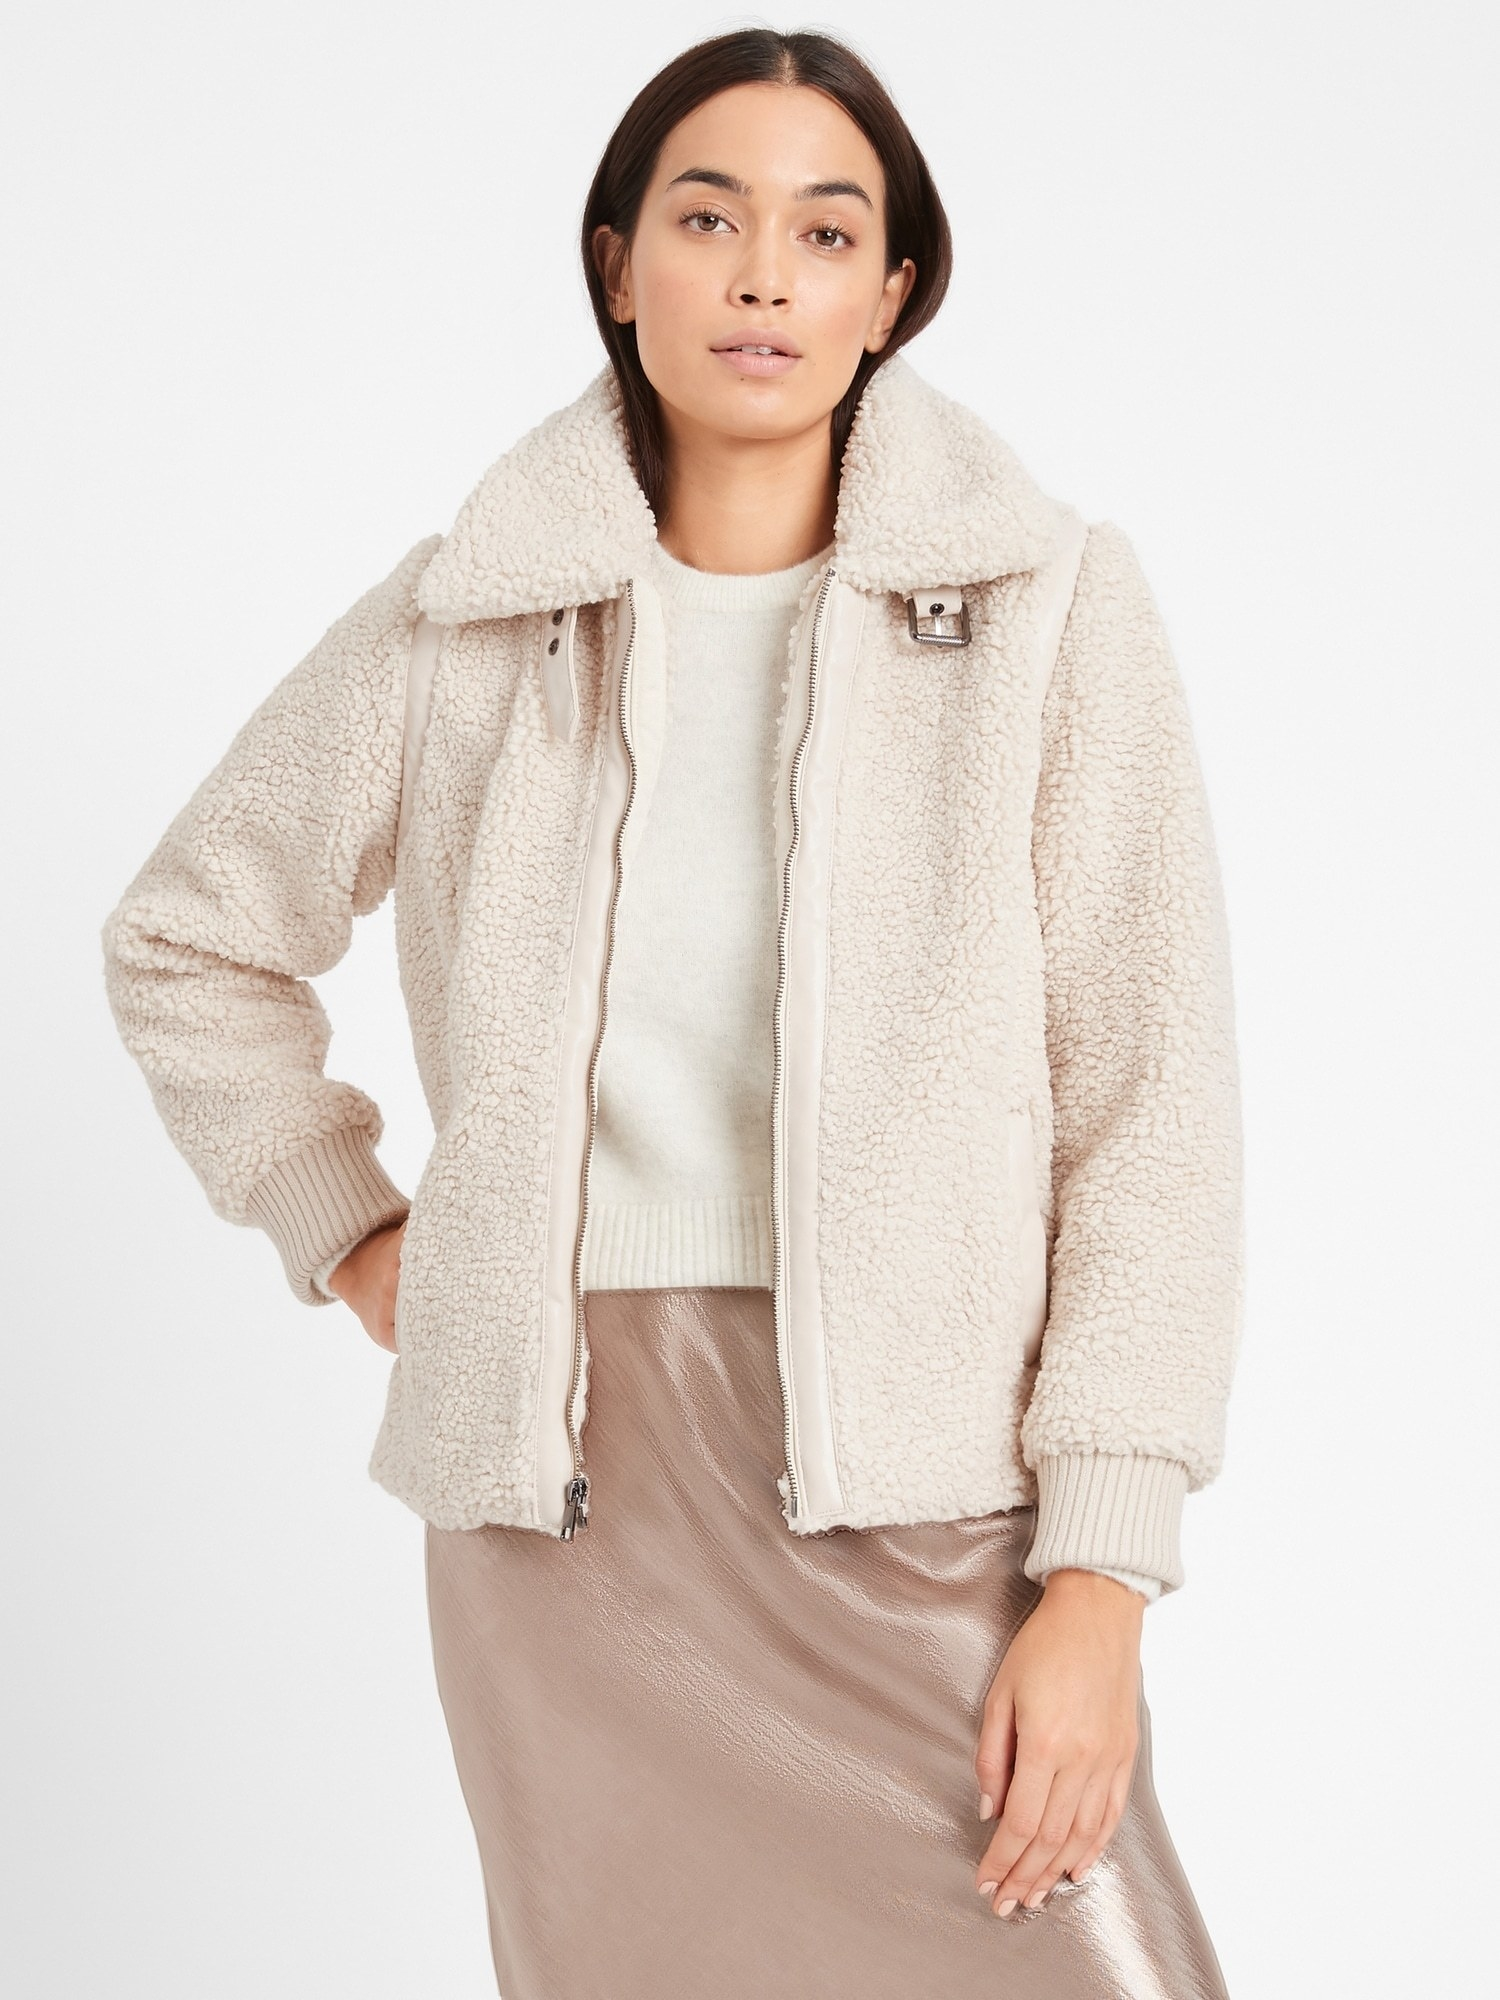 Model in the cream jacket with ribbed cuffs and zip front